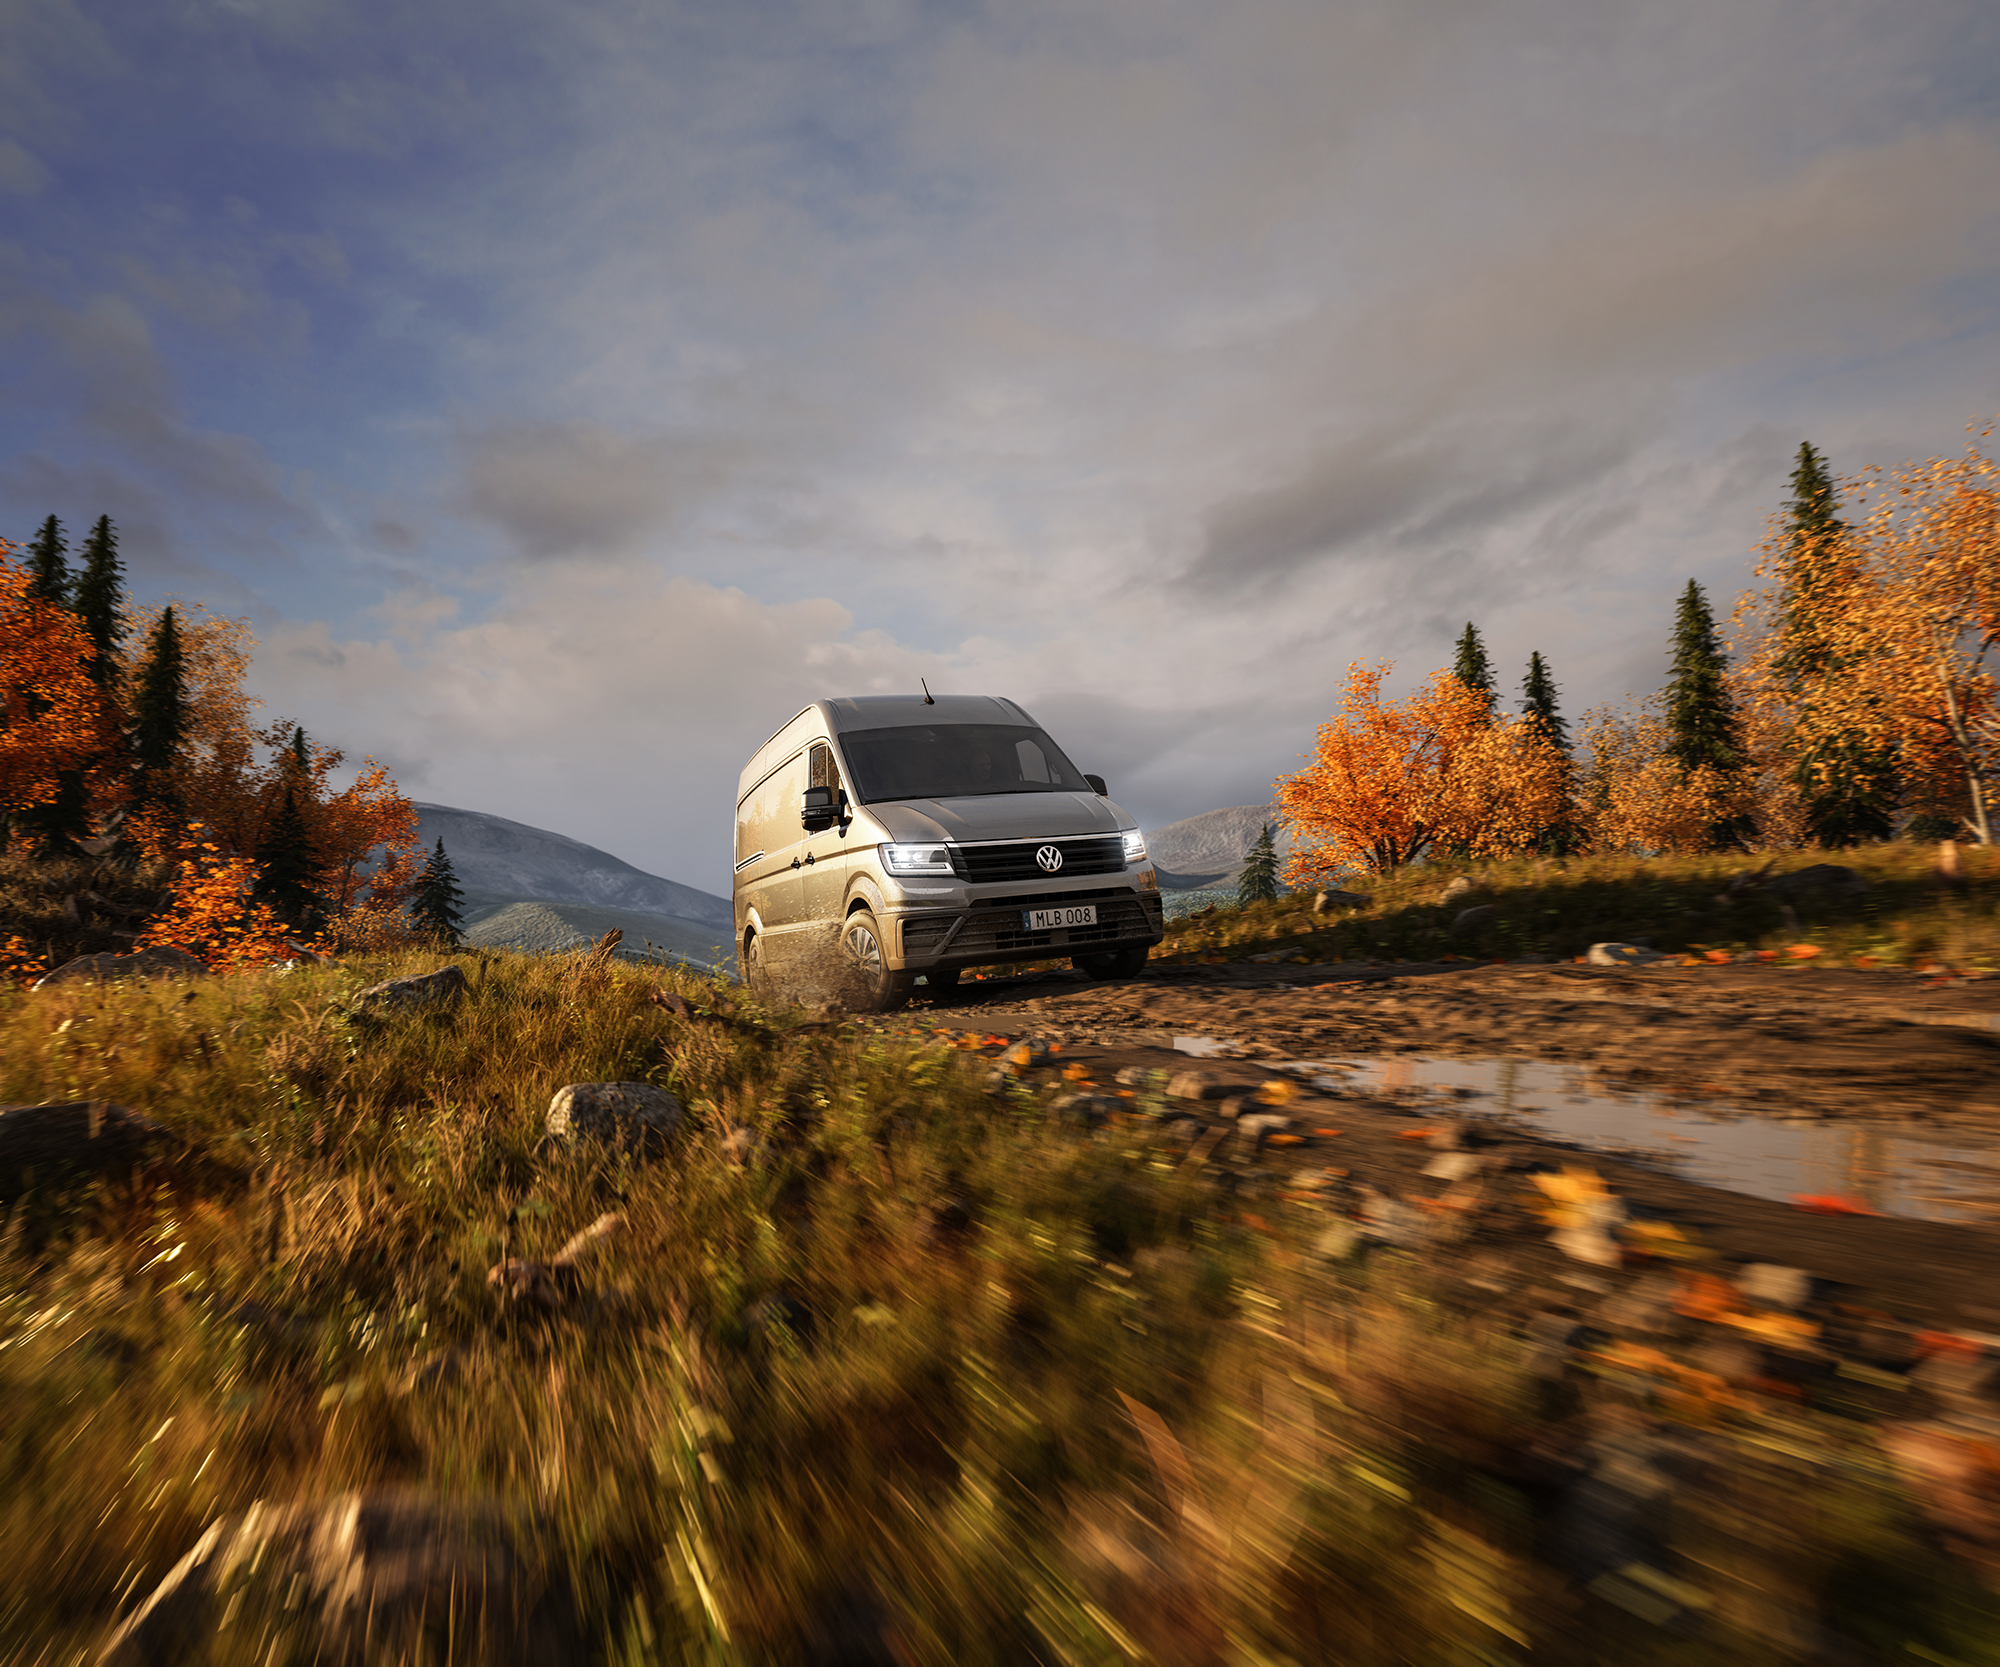 Volkswagen Crafter in the mountains on a backyard in autumn, muddy road Volymax cabinet and pickup Skåp lastbil